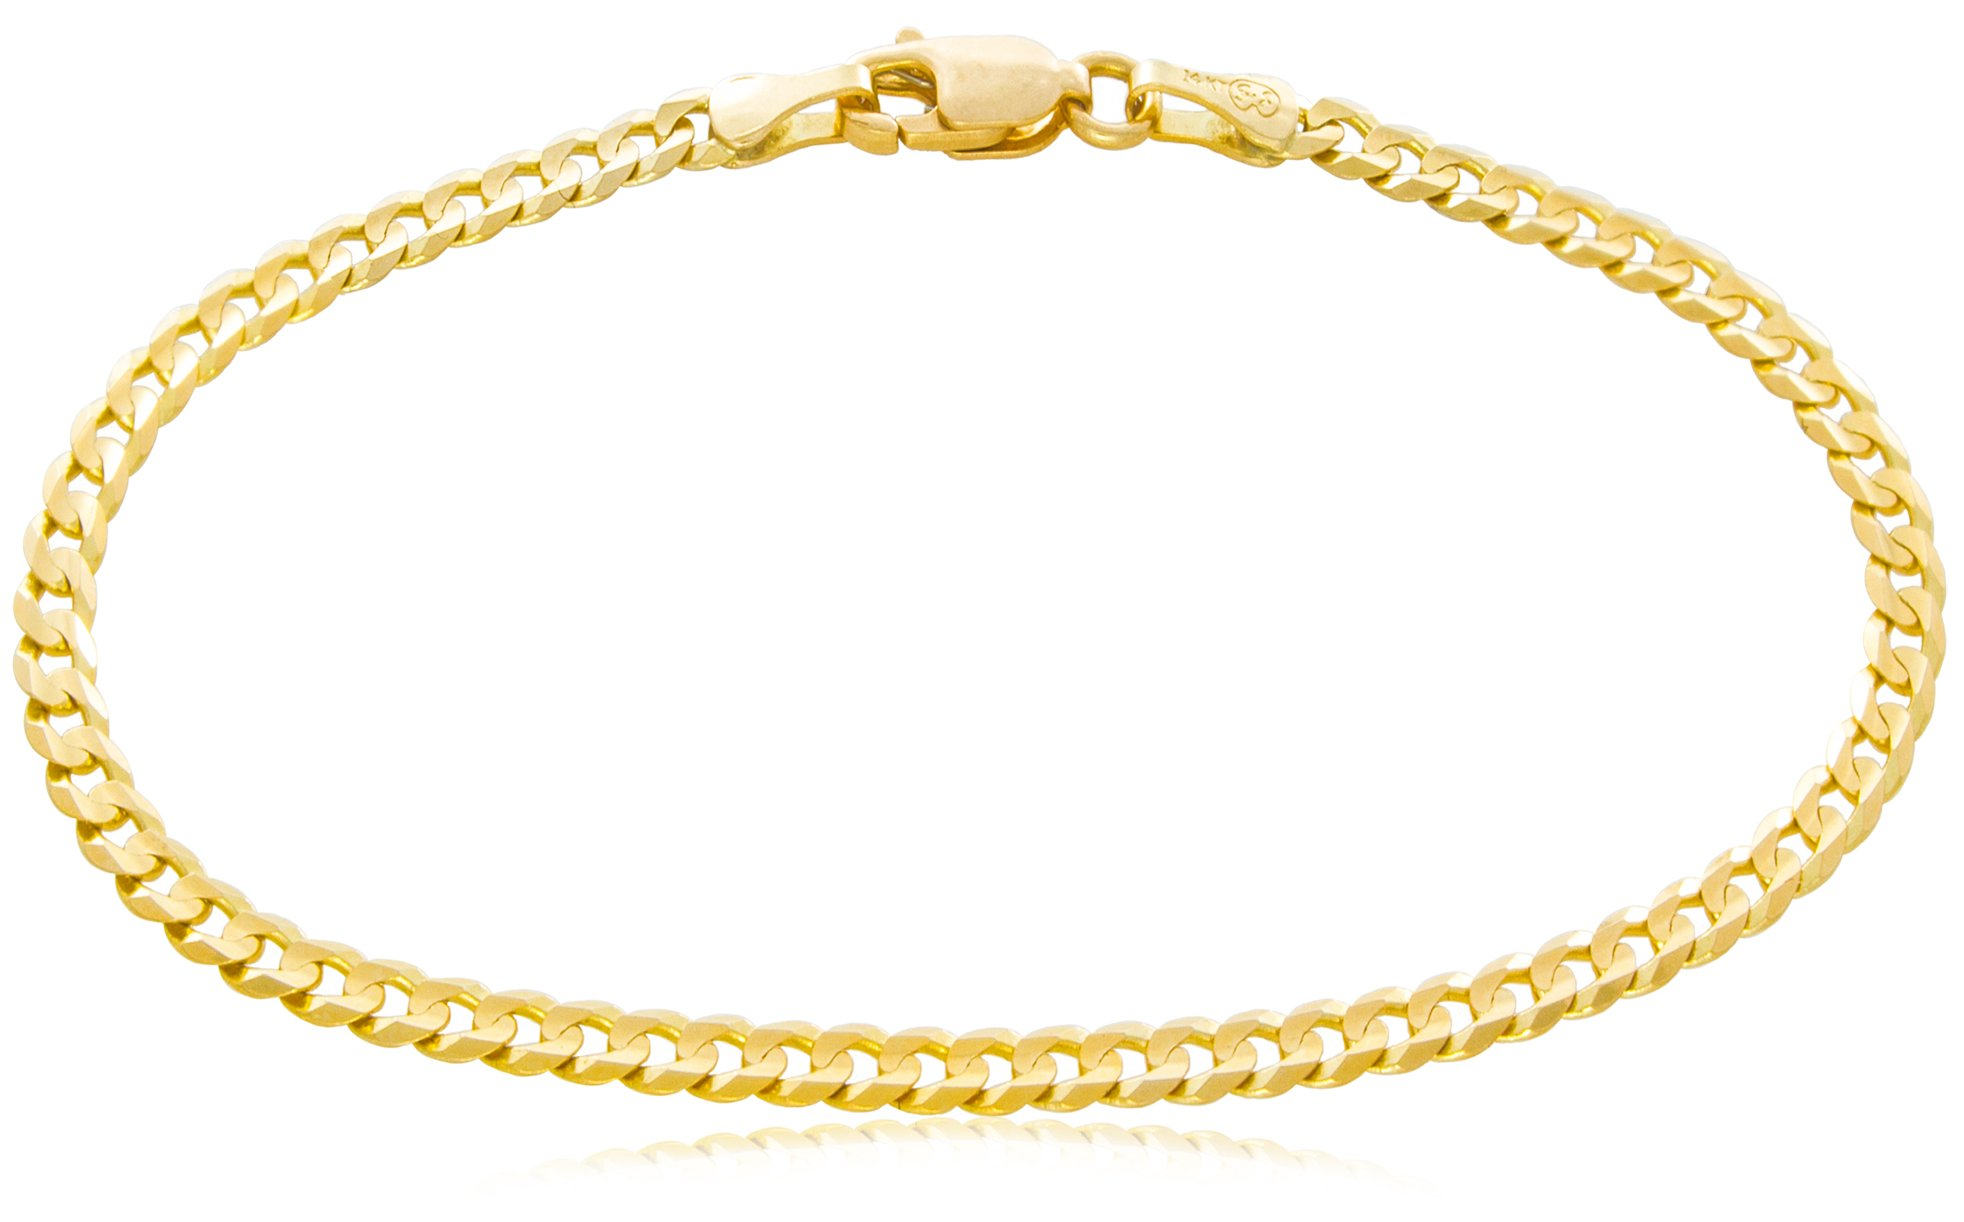 Solid Gold Curb Chain Bracelet 14K Yellow Gold 3mm Wide by 8-1/2'' Long | 3.5g